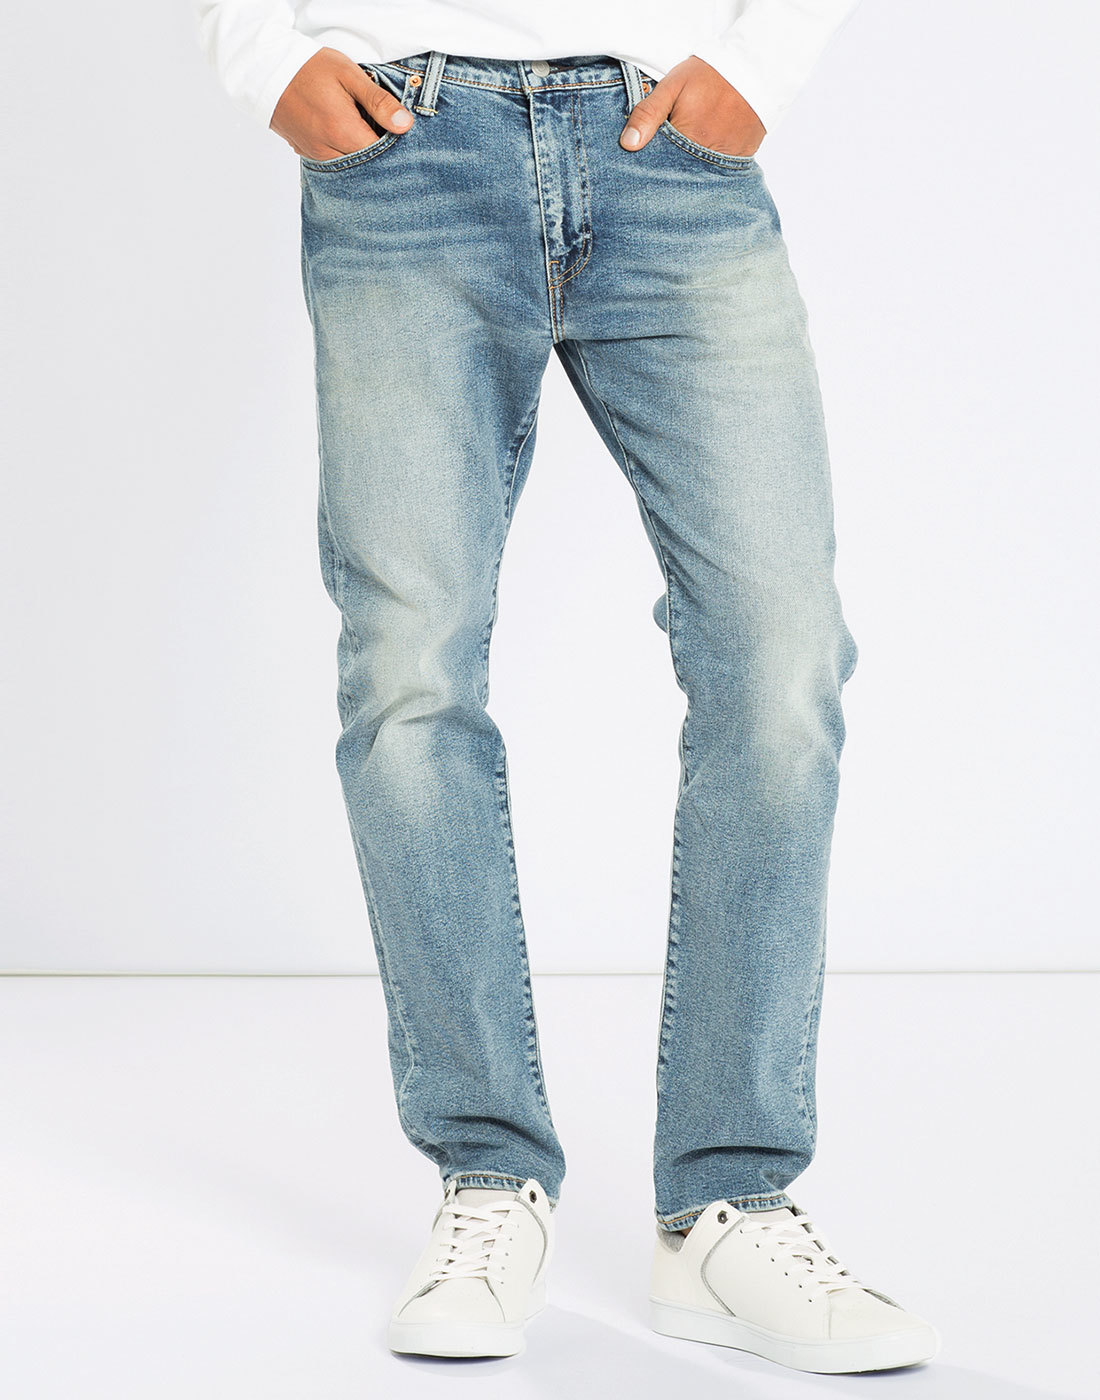 LEVI'S® 502 Mod Regular Tapered Denim Jeans MACOMB